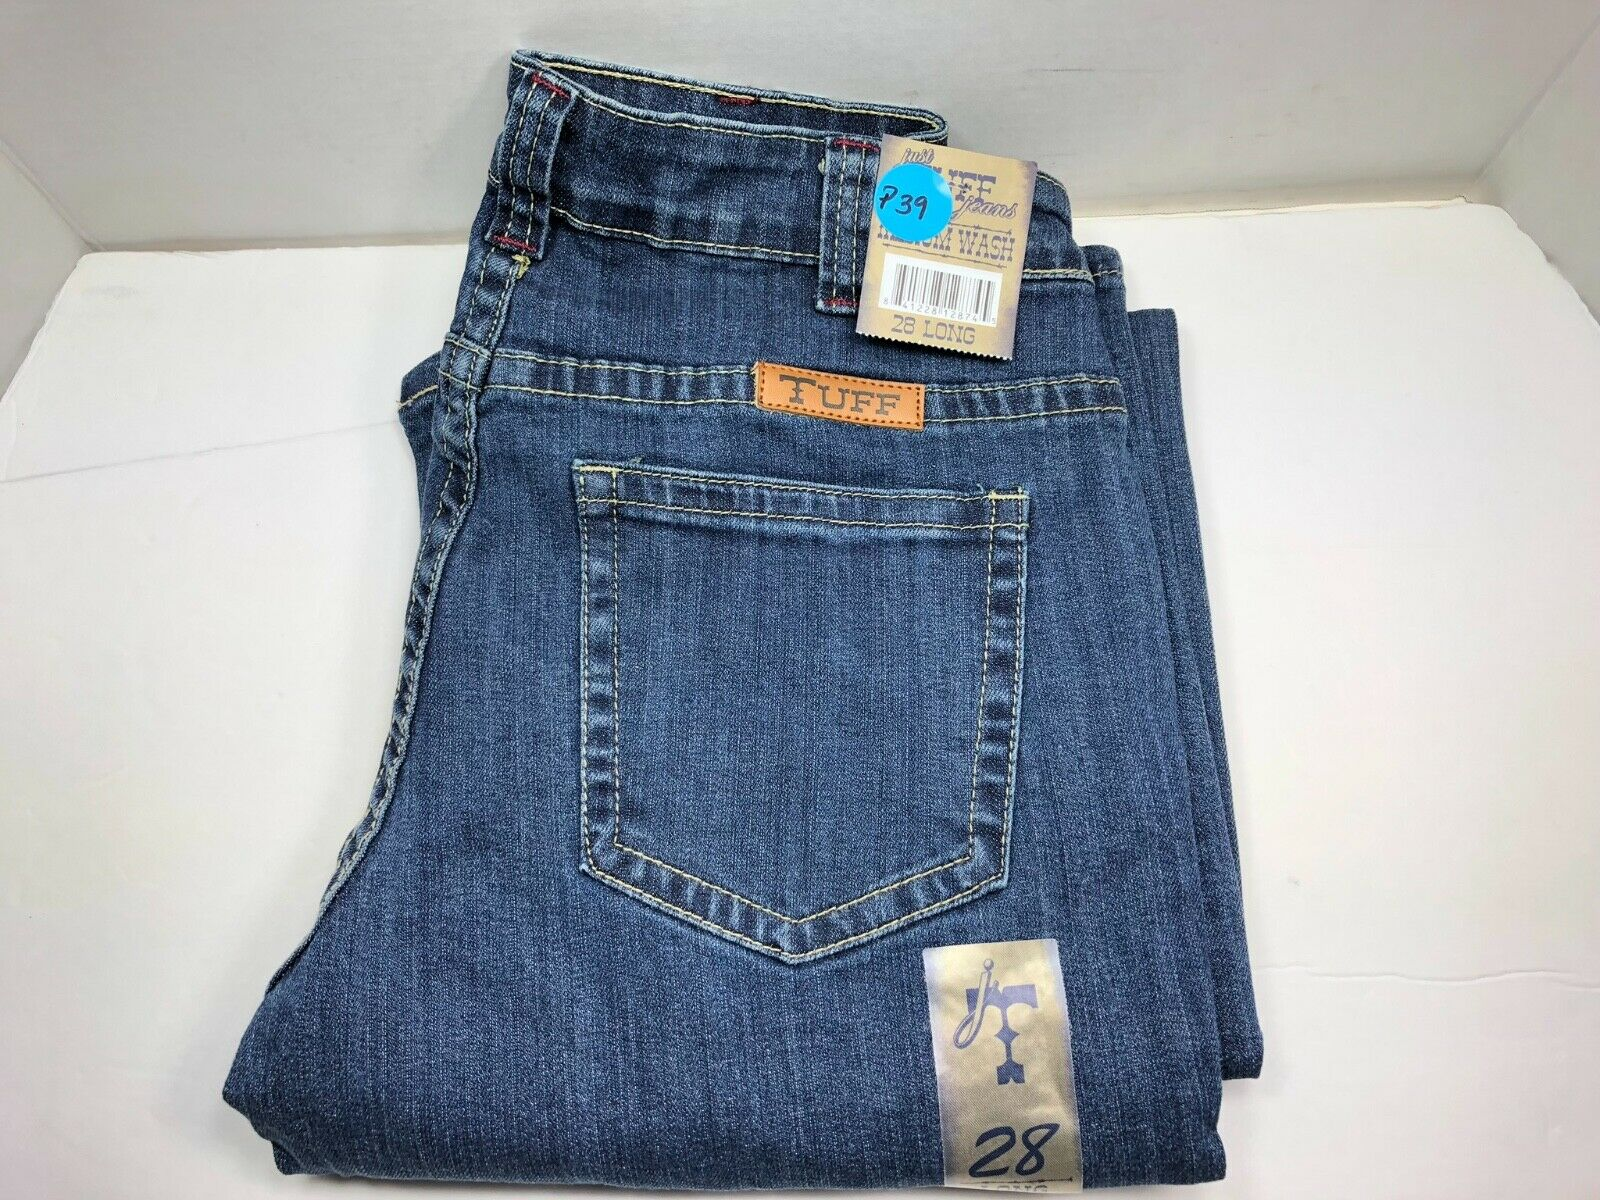 Cowgirl Tuff 'Just Tuff Medium' Women's Jeans, Size 28 Long (P39)